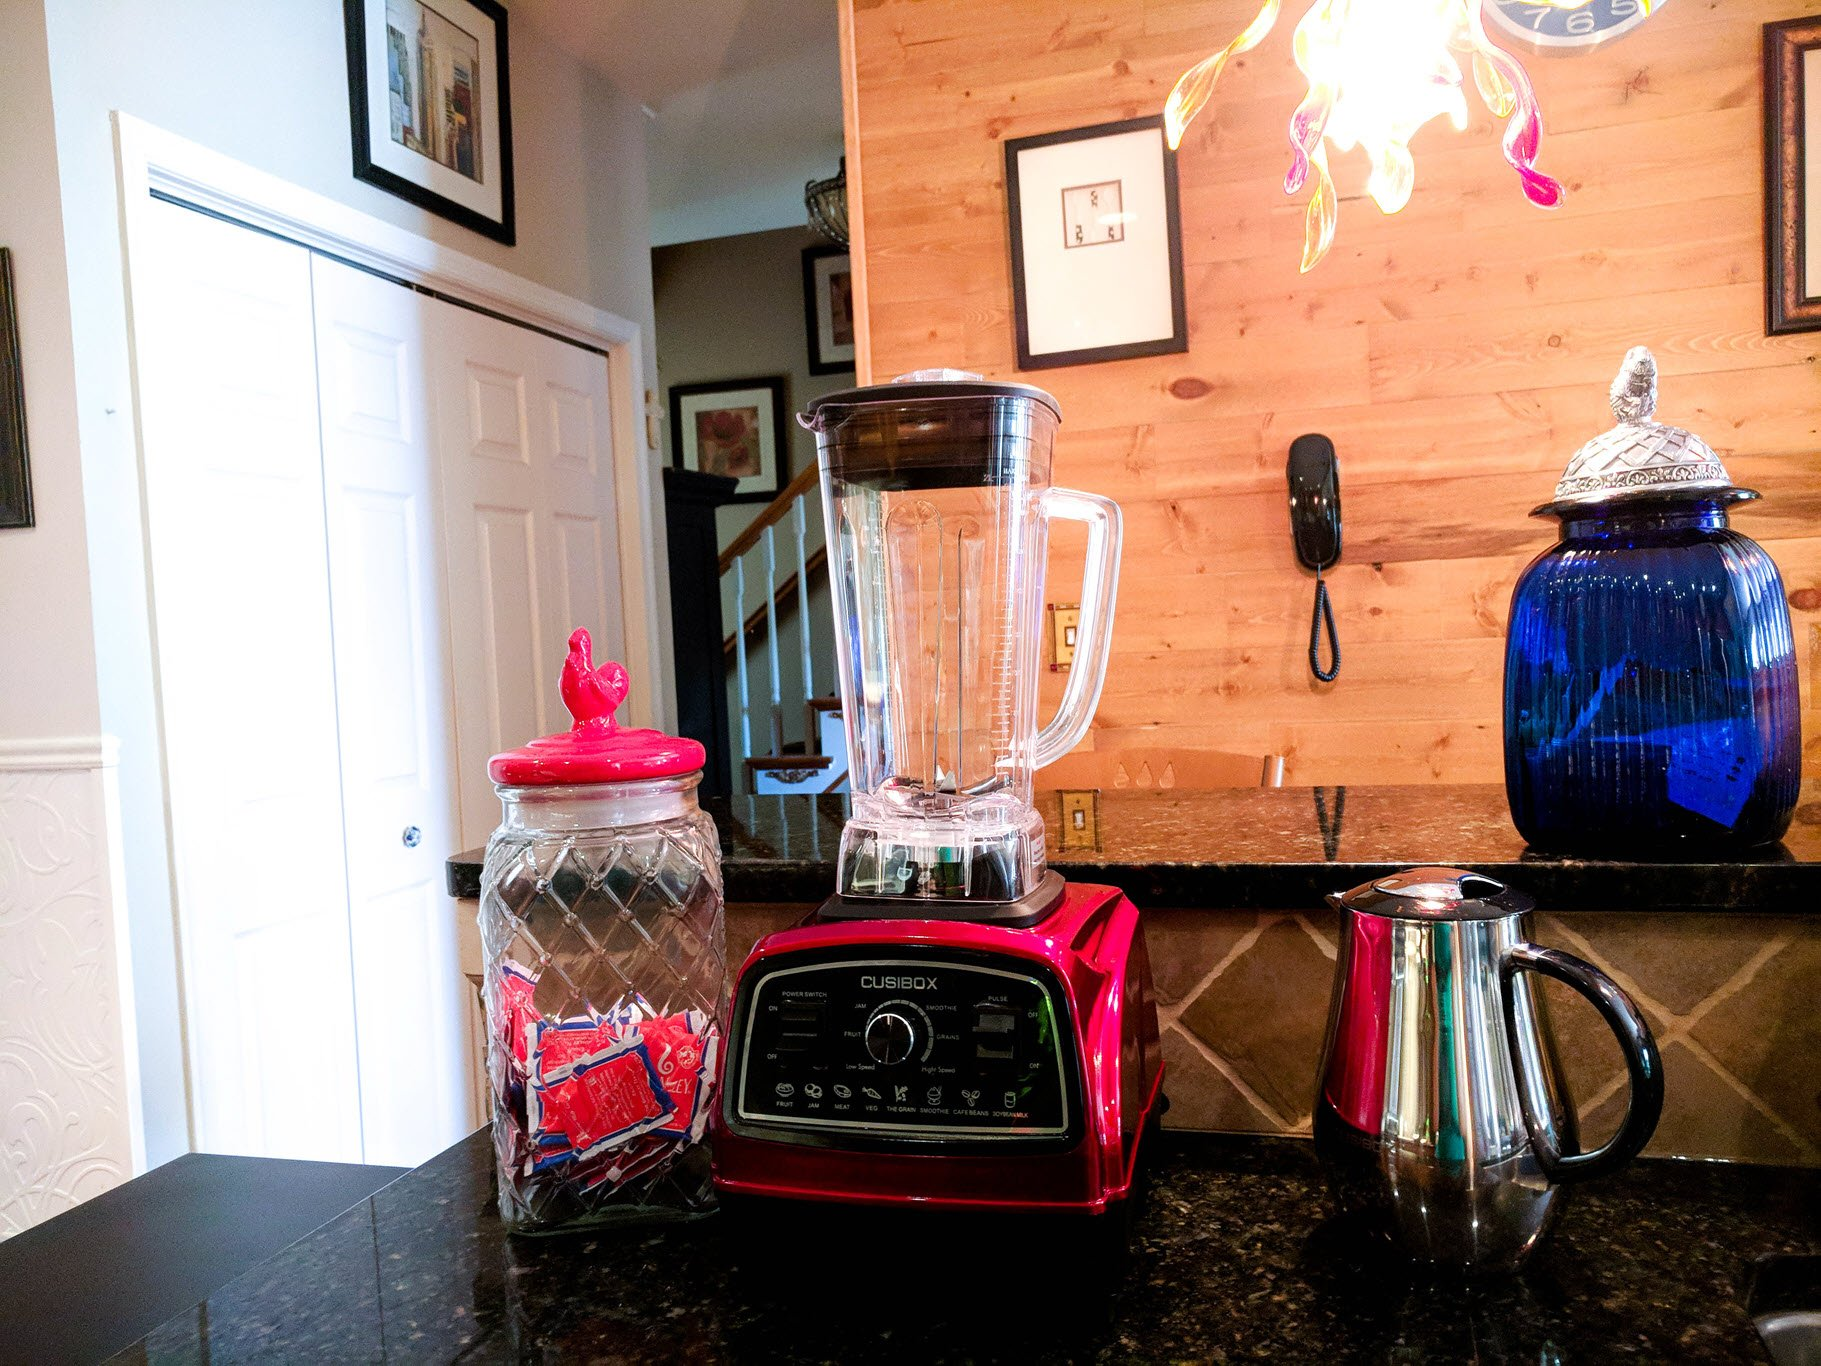 Small Kitchen Appliances Unboxing And Air Fryer Demo!